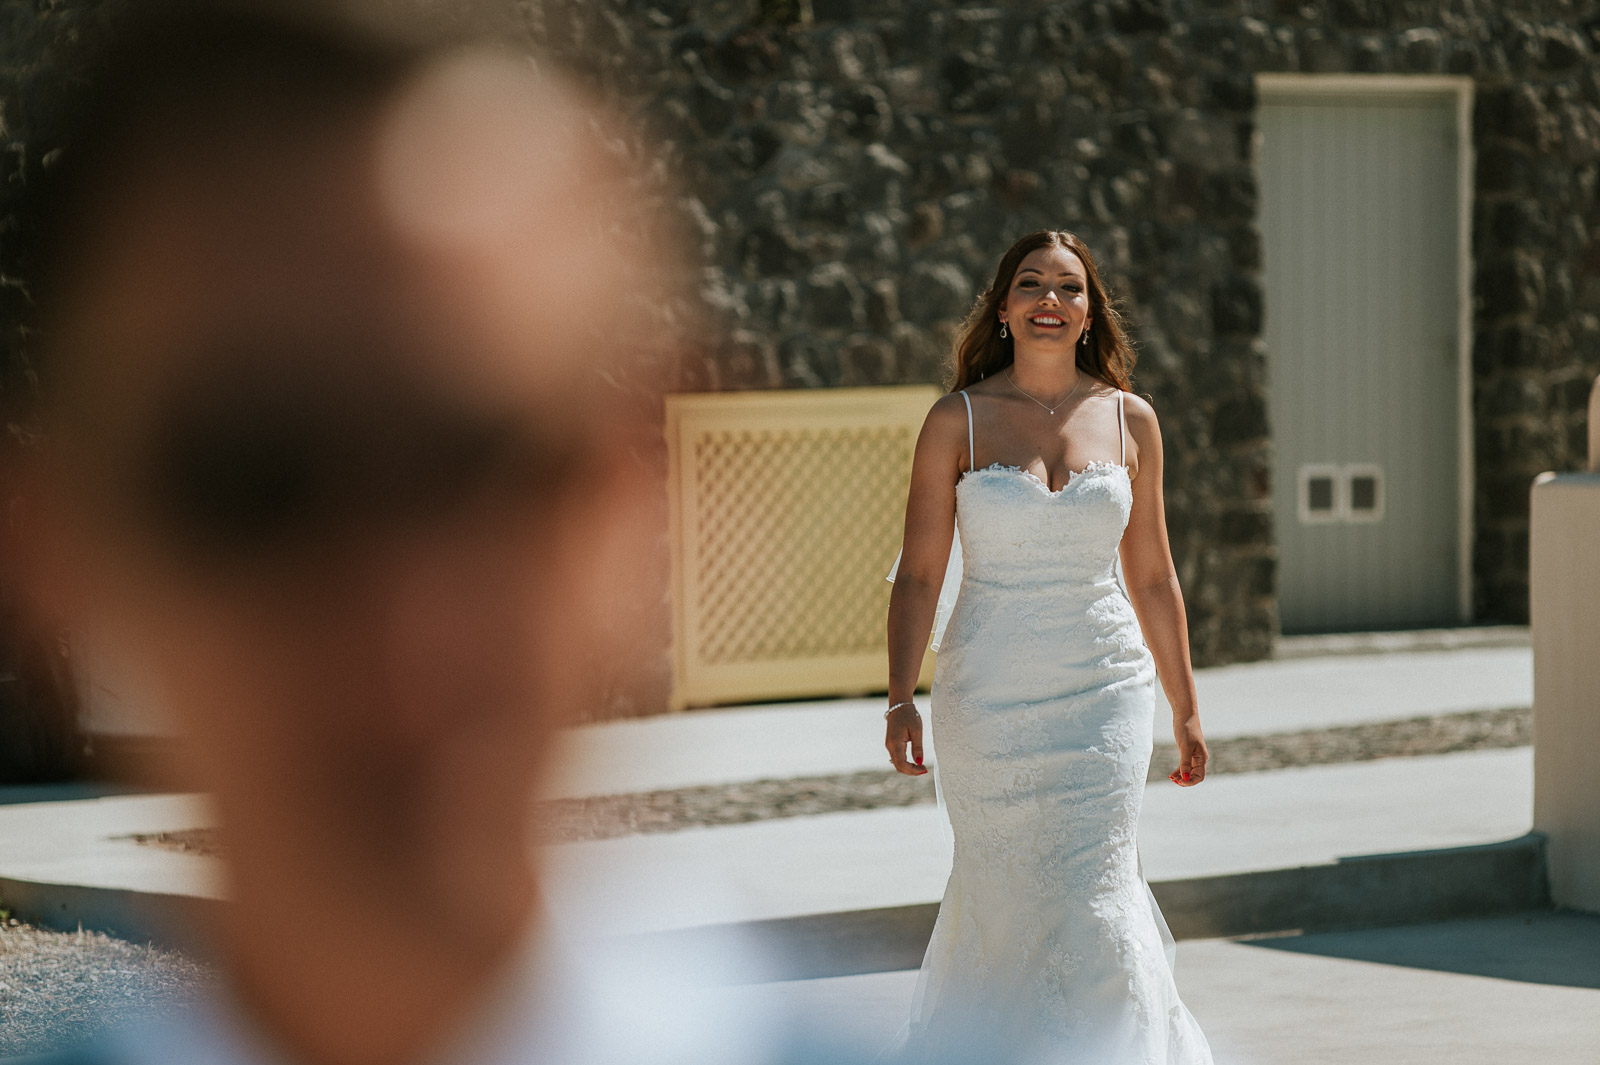 Santorini-Wedding-Photographer-Greece-Destination-Weddings-Mait-Juriado-M&J-Studios-028